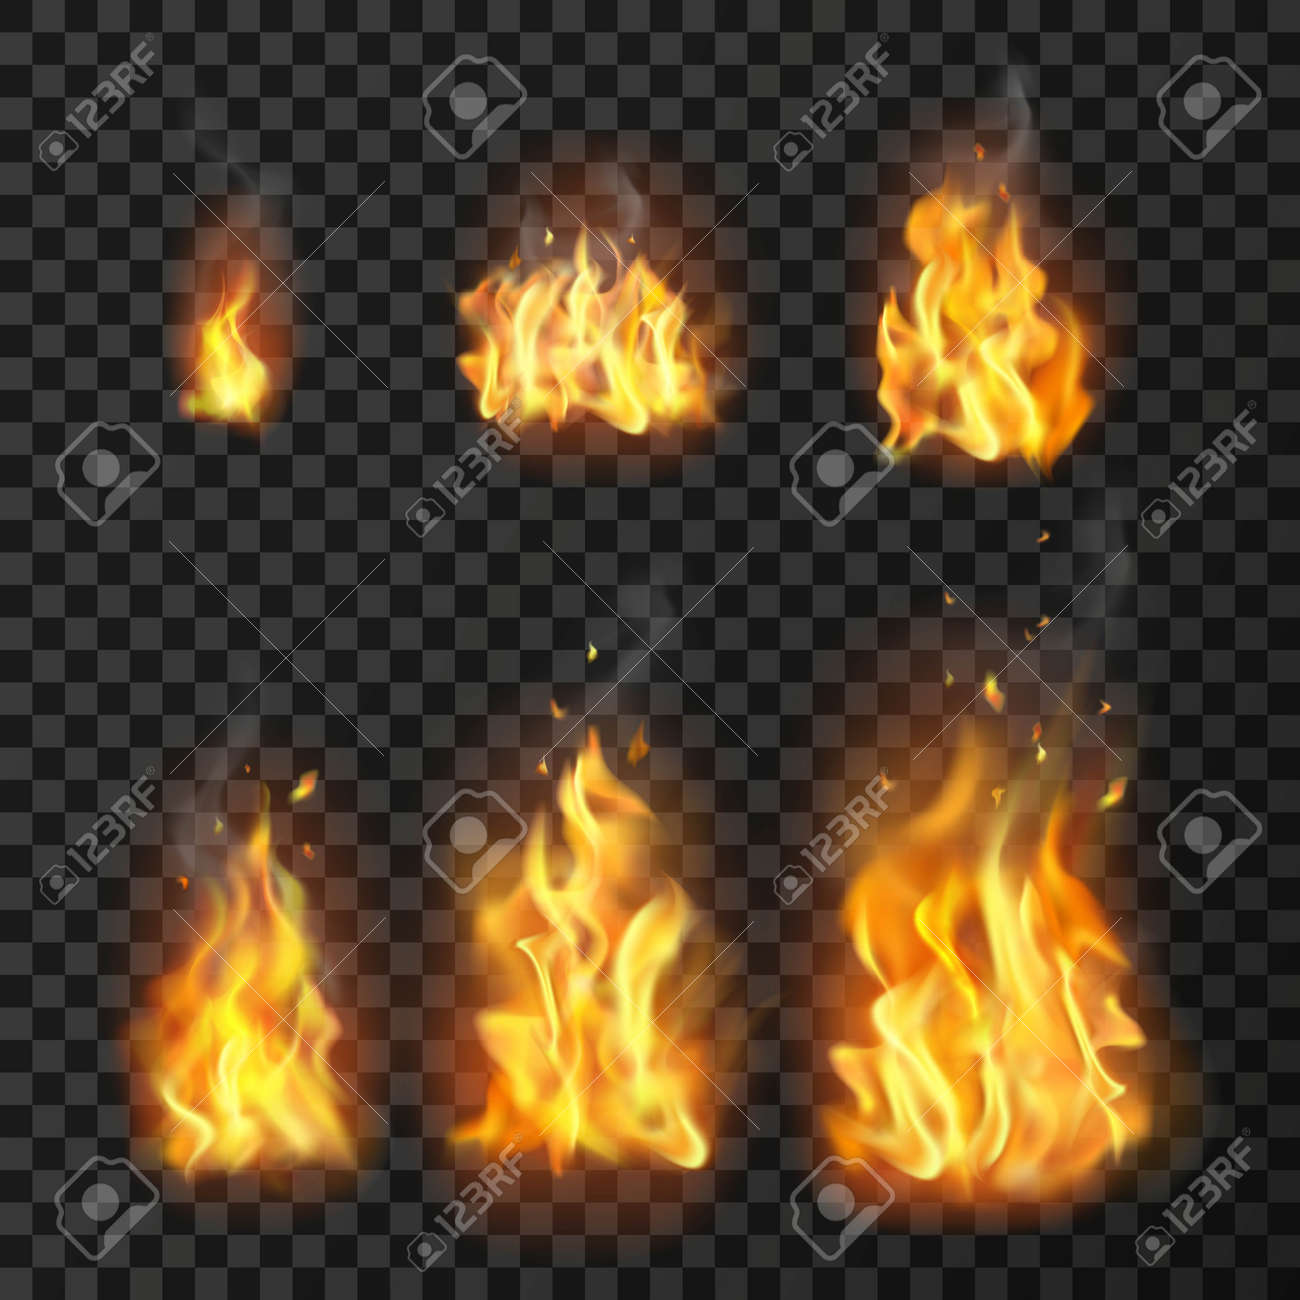 Set of realistic fire flames of various size with sparks on transparent background isolated vector illustration - 166540683